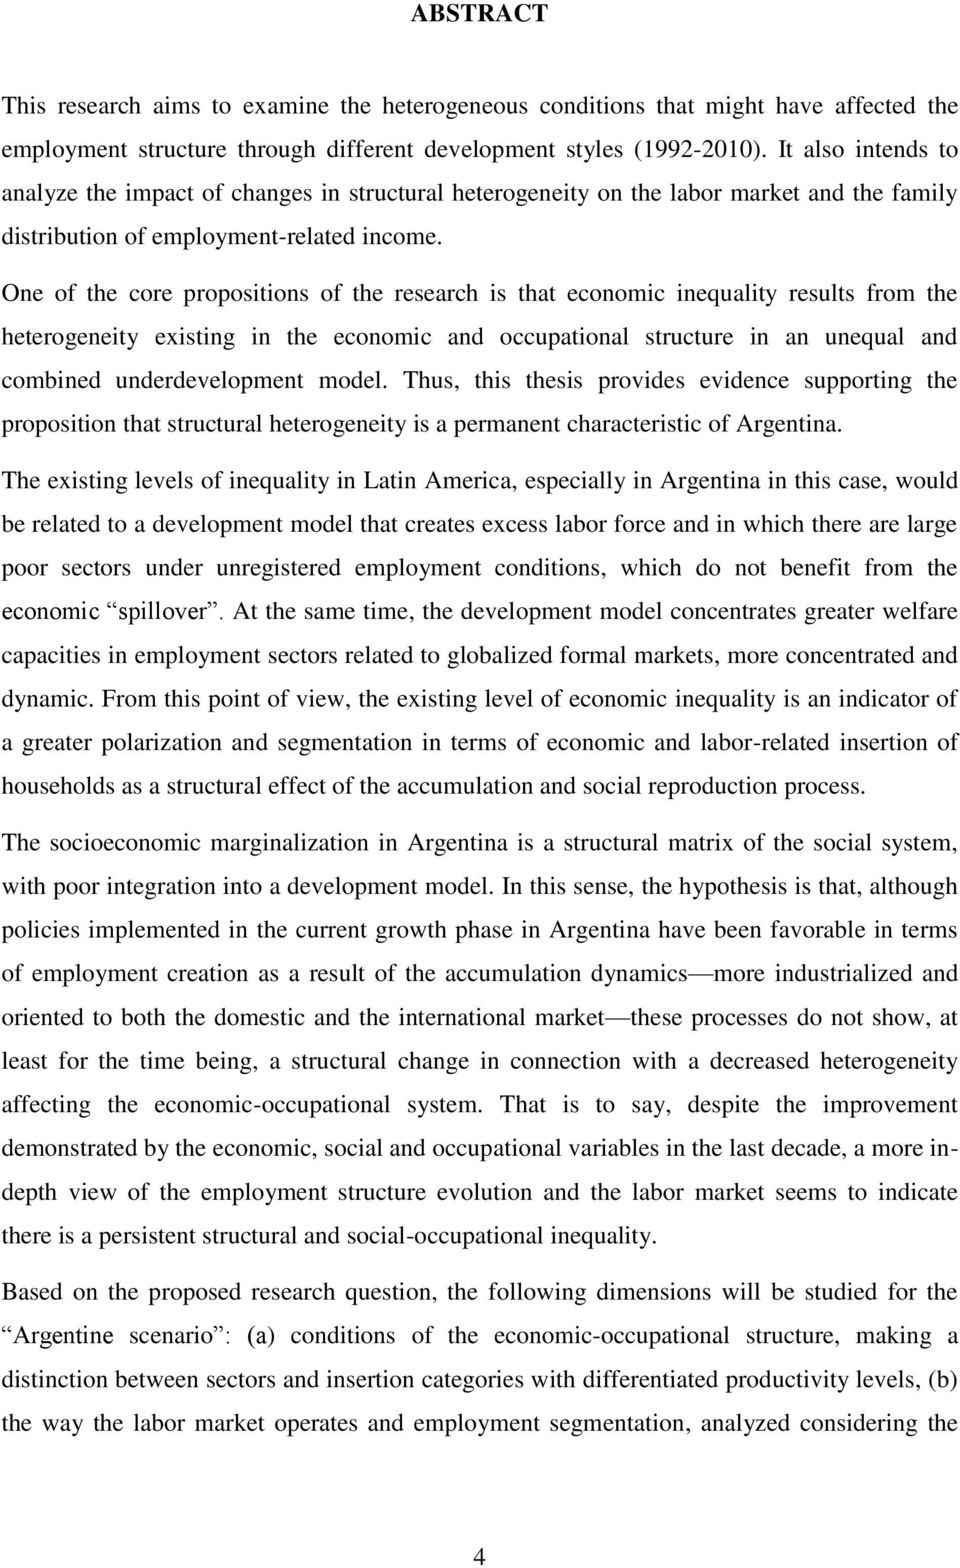 One of the core propositions of the research is that economic inequality results from the heterogeneity existing in the economic and occupational structure in an unequal and combined underdevelopment